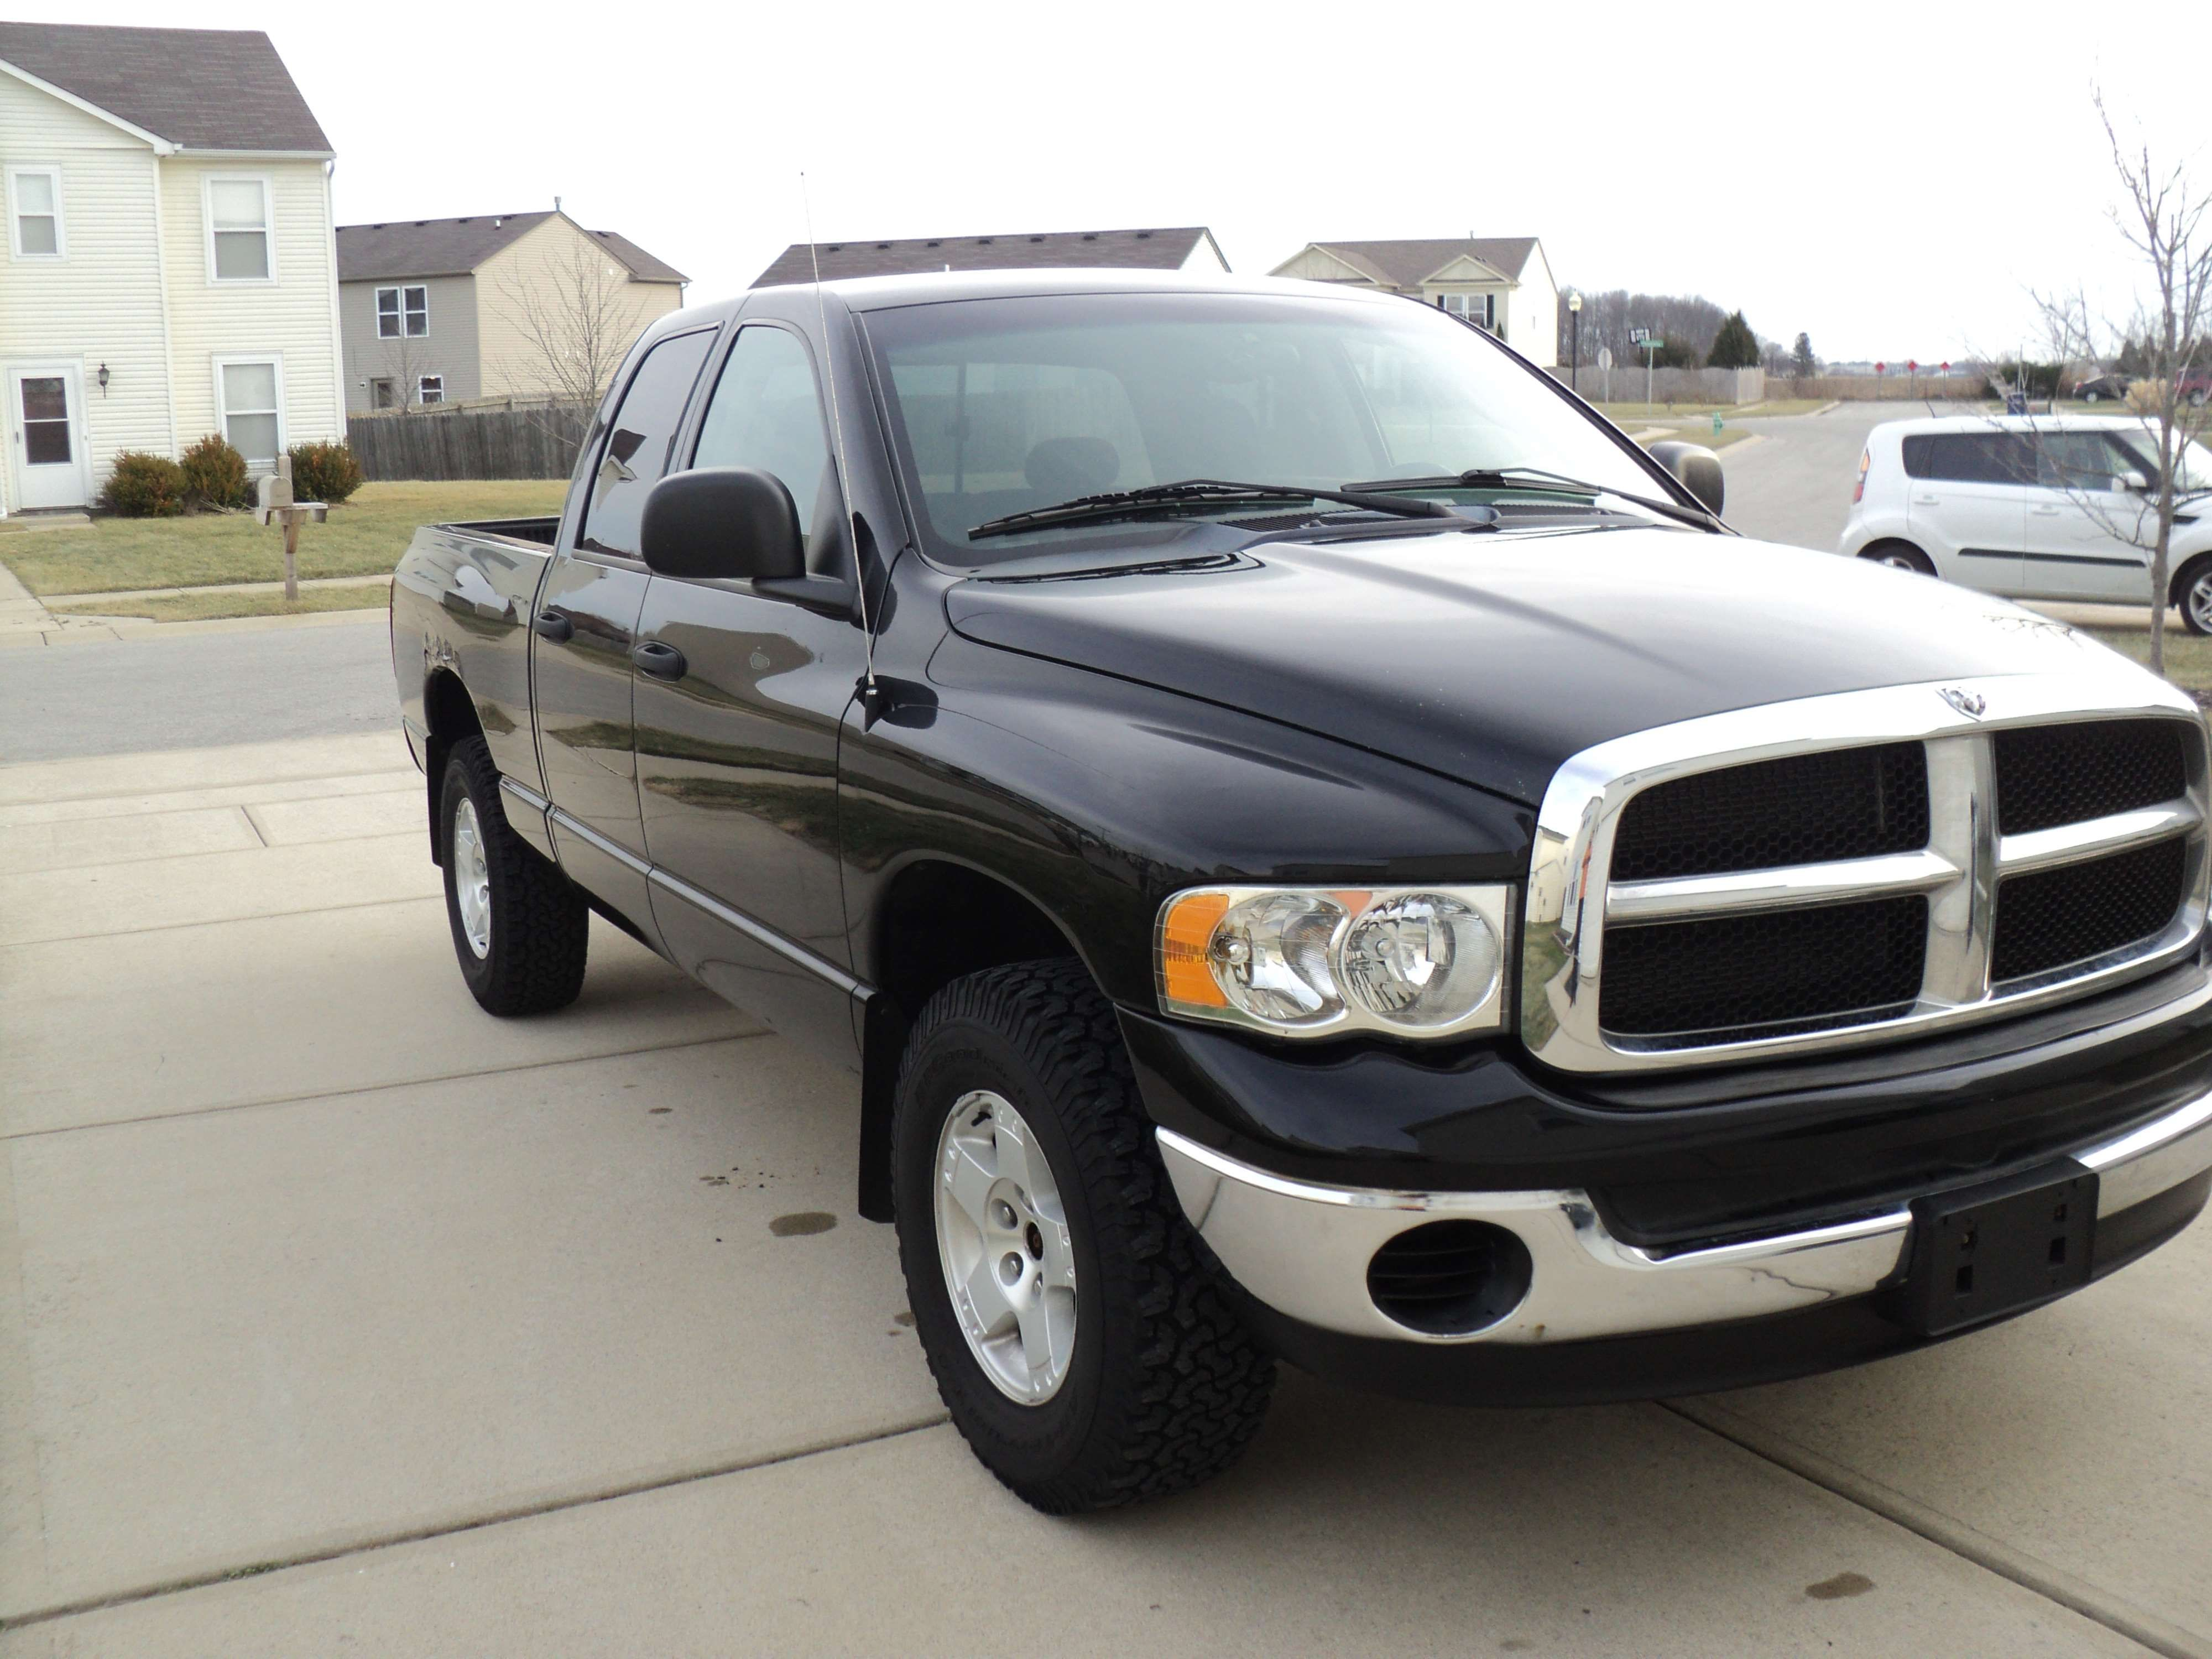 2004 Dodge Ram 1500 For Sale >> Used 2004 Dodge Ram 1500 Truck For Sale 15 900 At